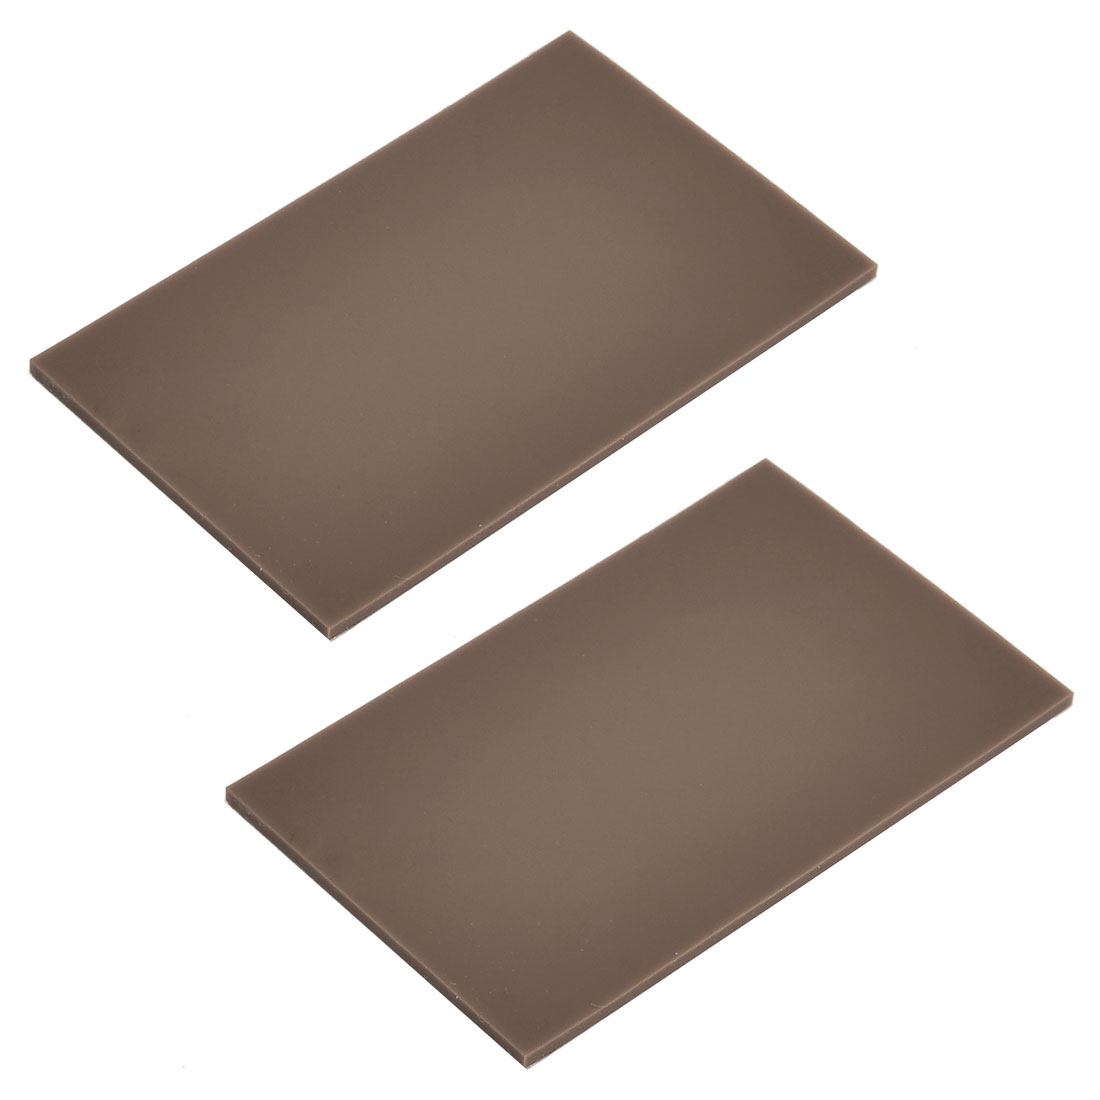 Silicone Rectangle Design Furniture Nonslip Protector Pad Wood Color 2 Pcs